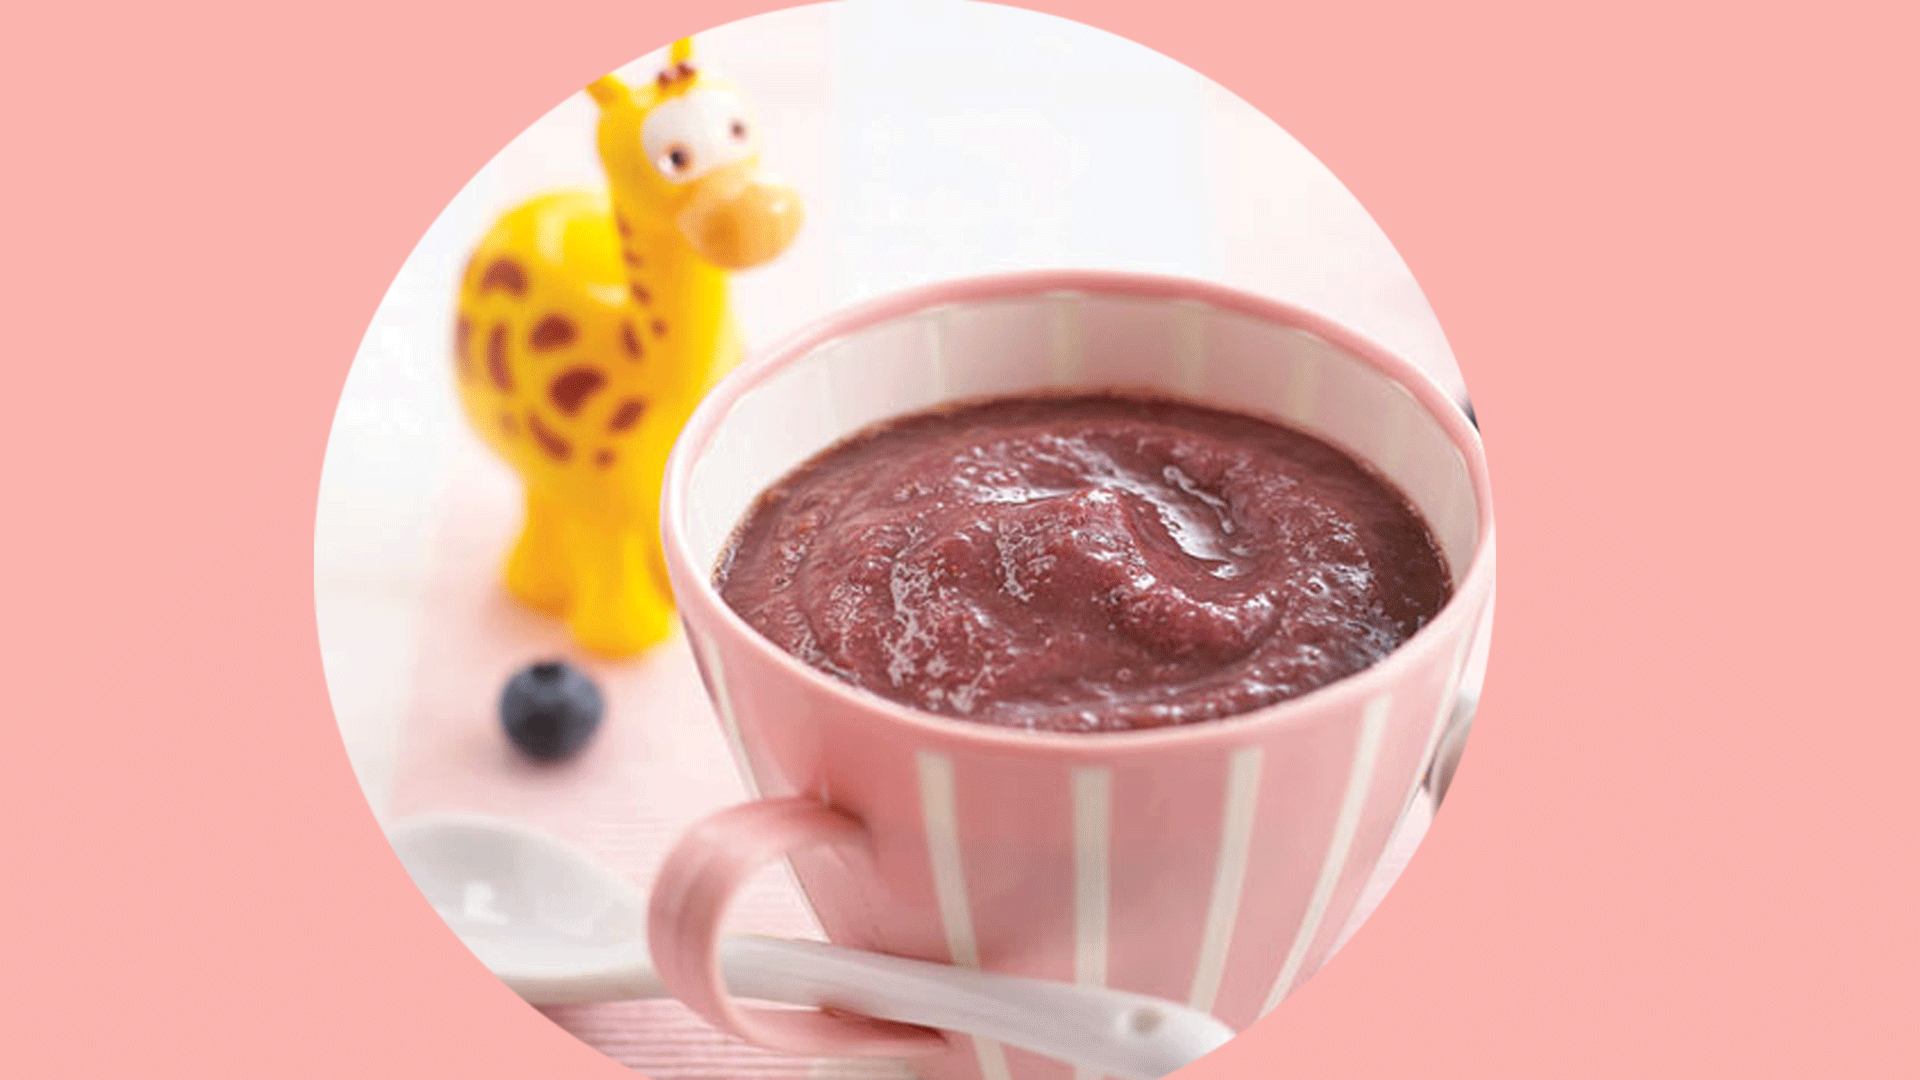 Blueberry, Pear And Banana Puree